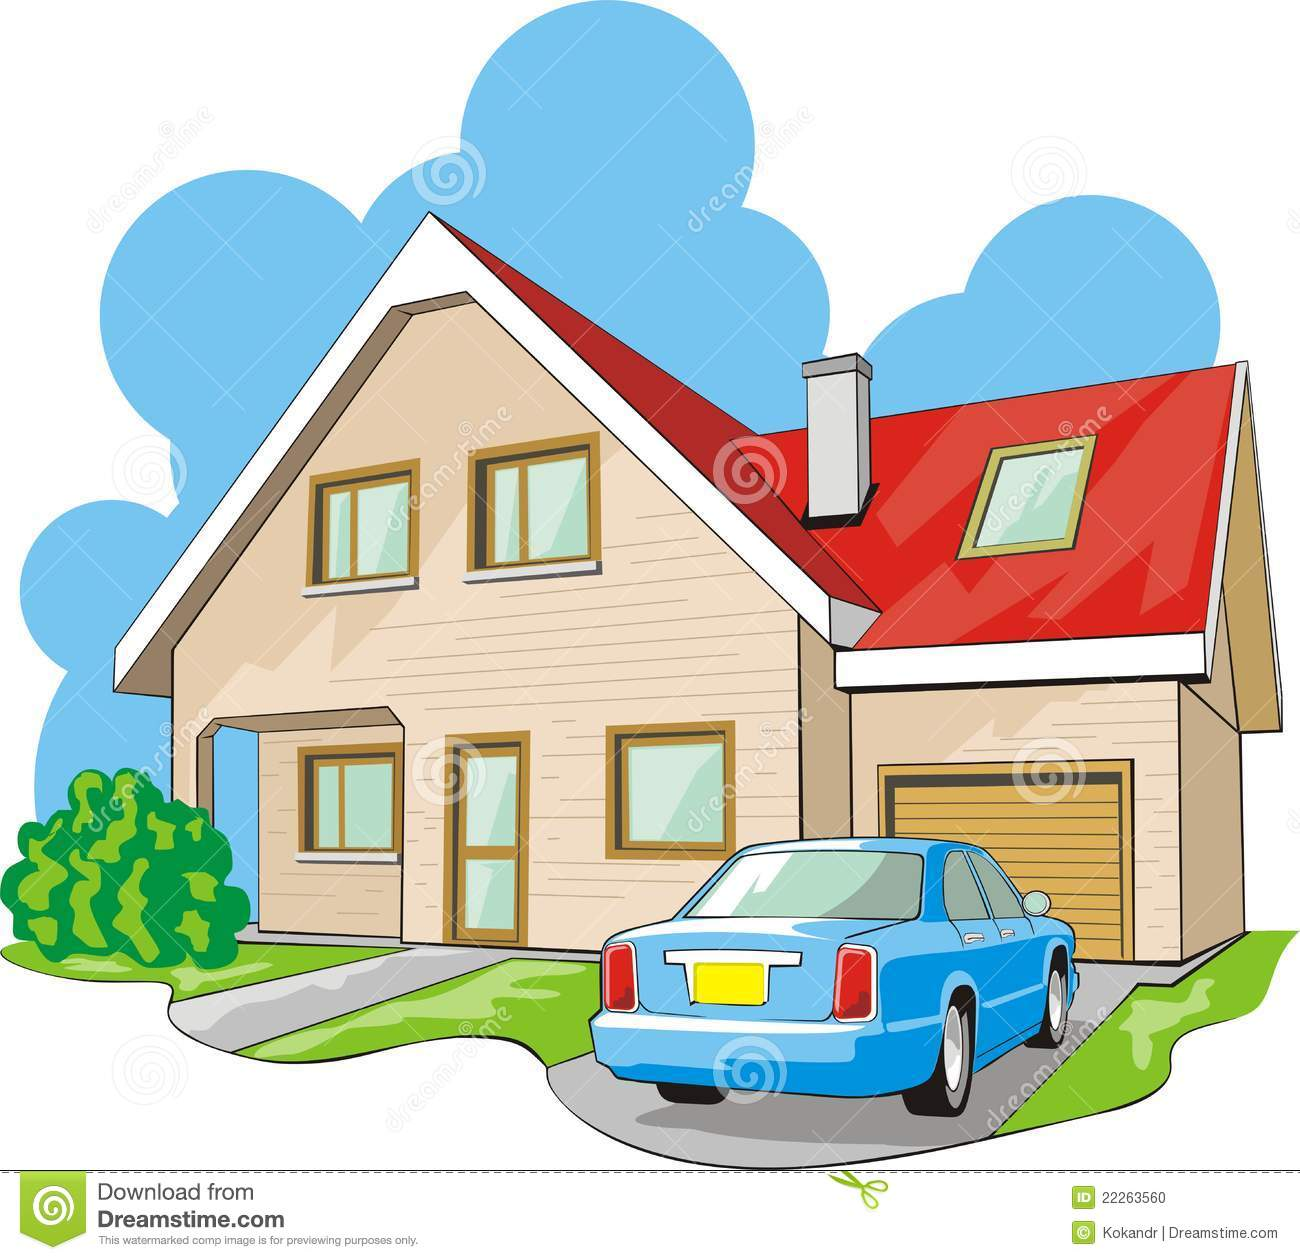 messy house clipart - photo #43